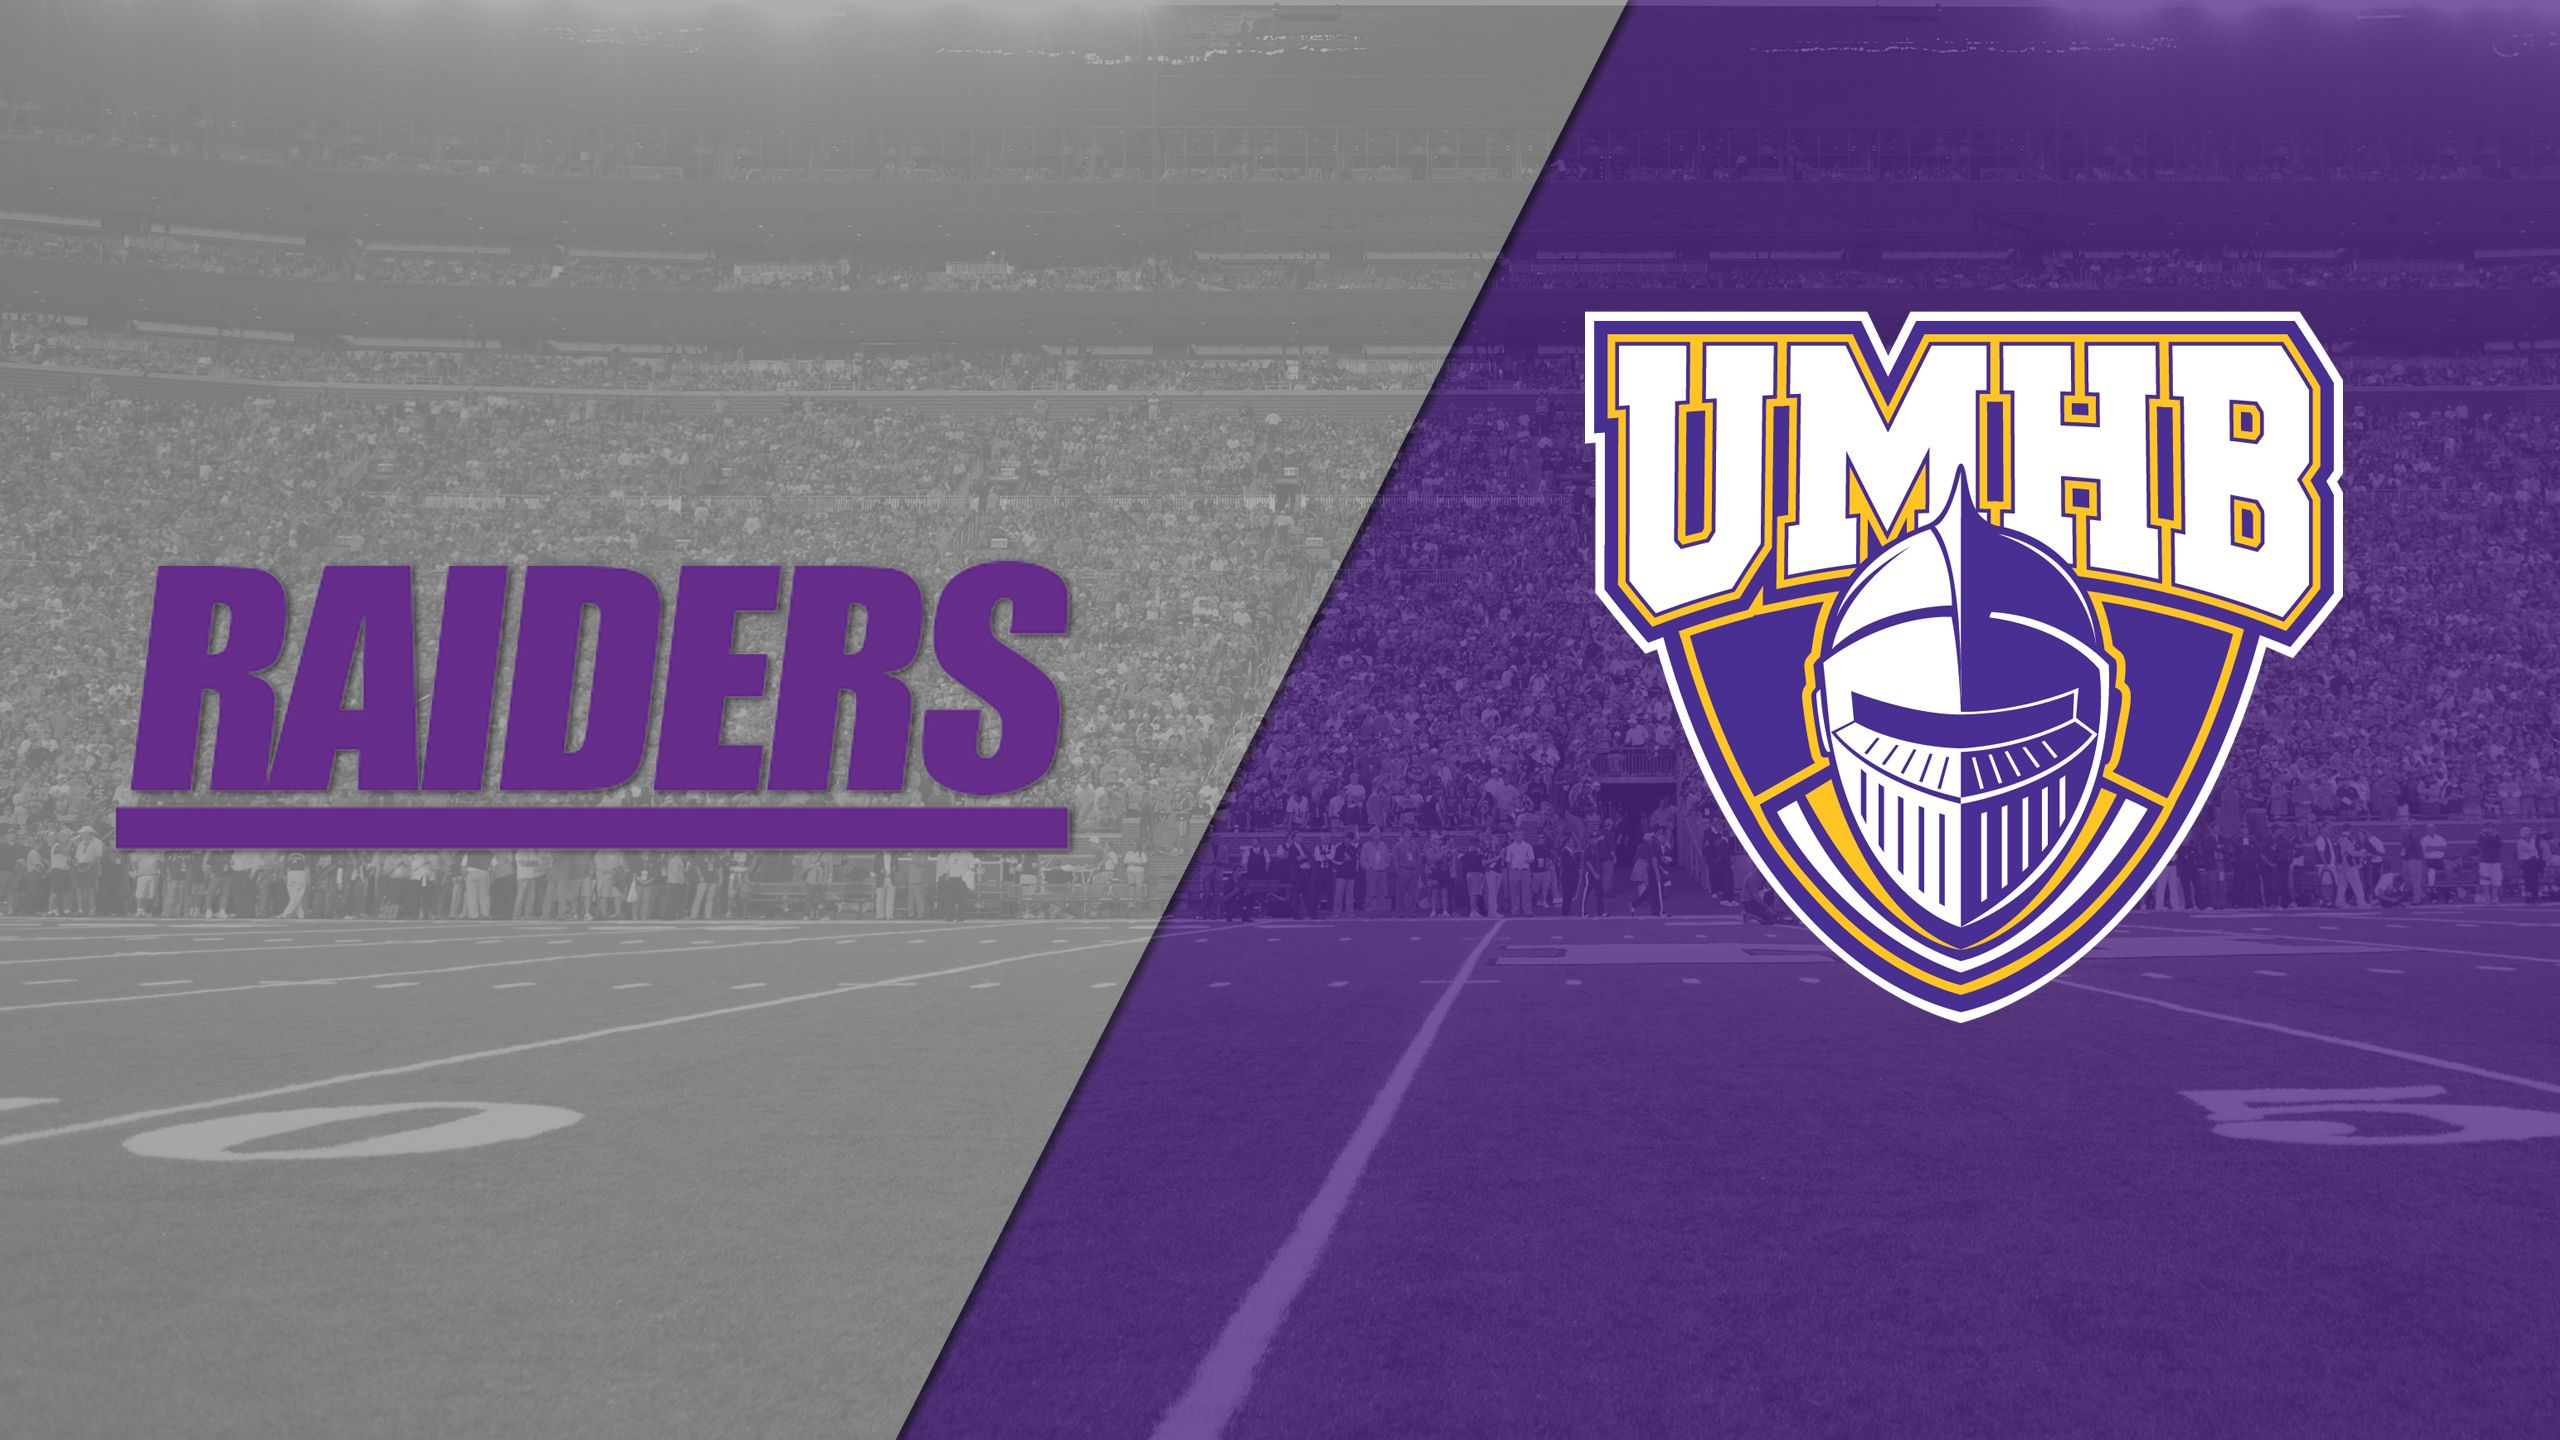 Mount Union (OH) vs. Mary Hardin-Baylor (TX) (Semifinal #2) (NCAA Division III Football Championship)